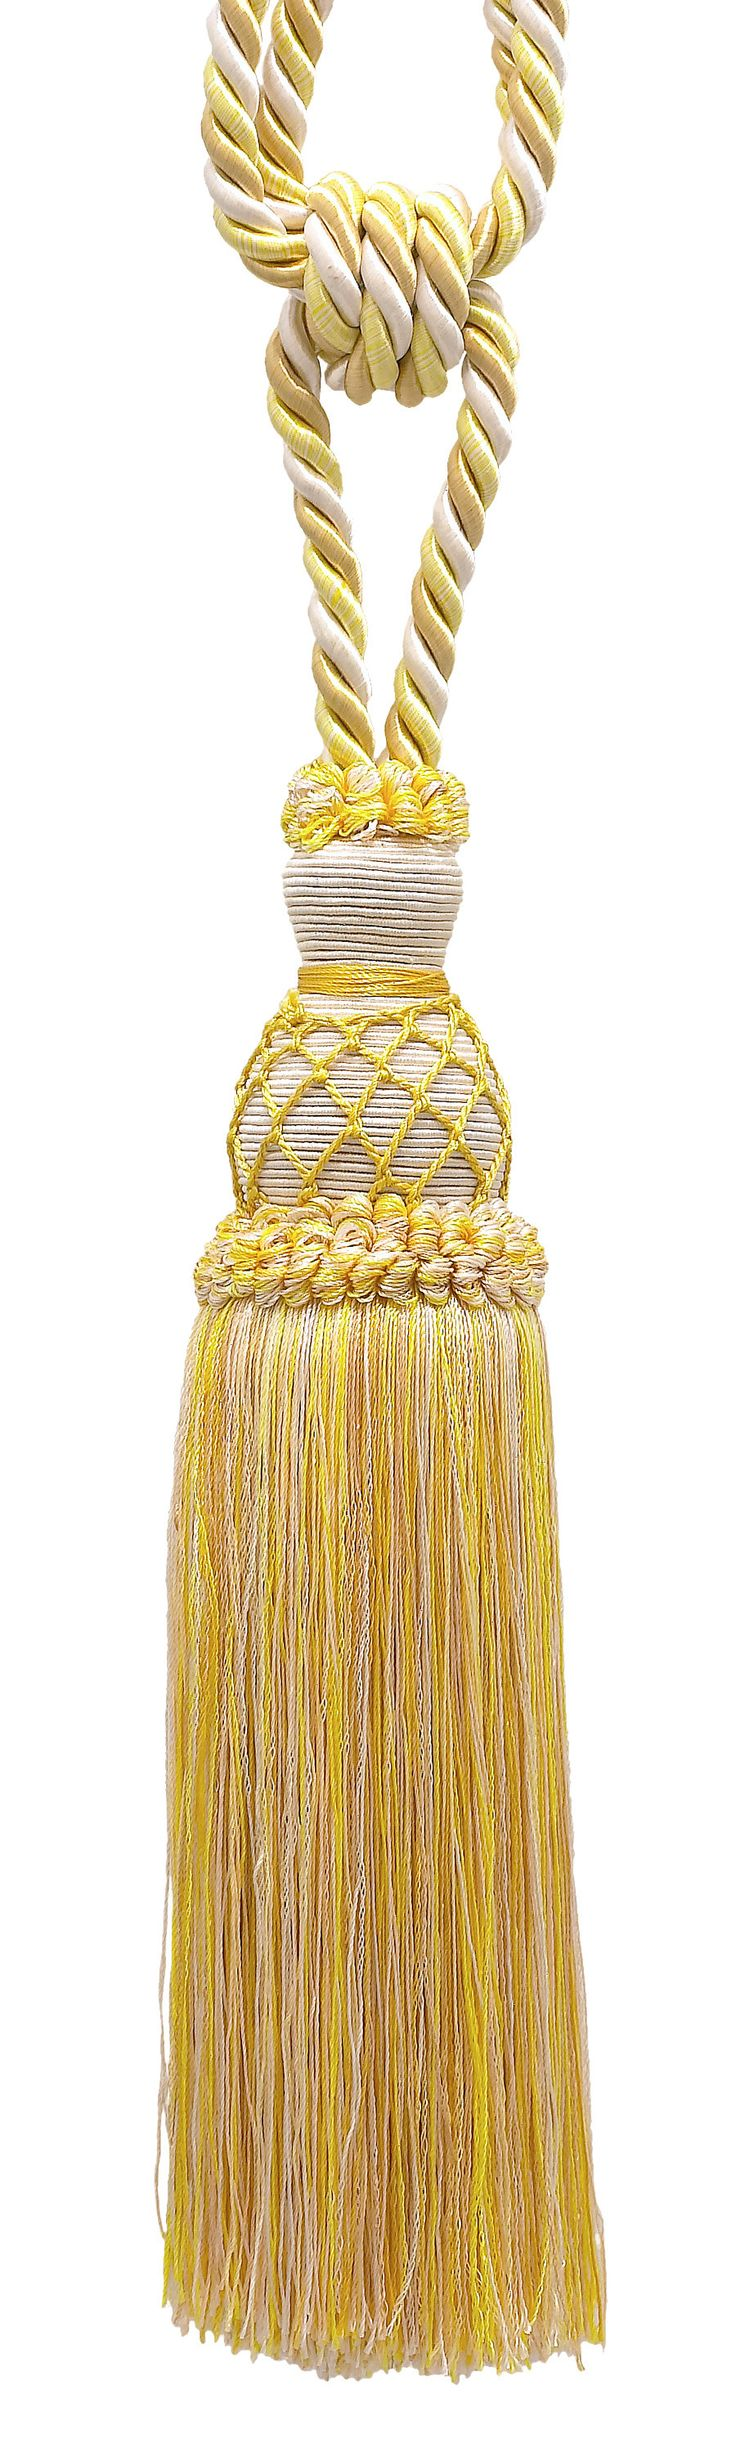 """Elegant Ivory, Yellow Gold Curtain & Drapery Tassel Tieback / 10"""" tassel, 30 1/2"""" Spread (embrace), 3/8"""" Cord, Imperial II Collection Style# TBIN-1 Color: WINTER SUN - 4874"""